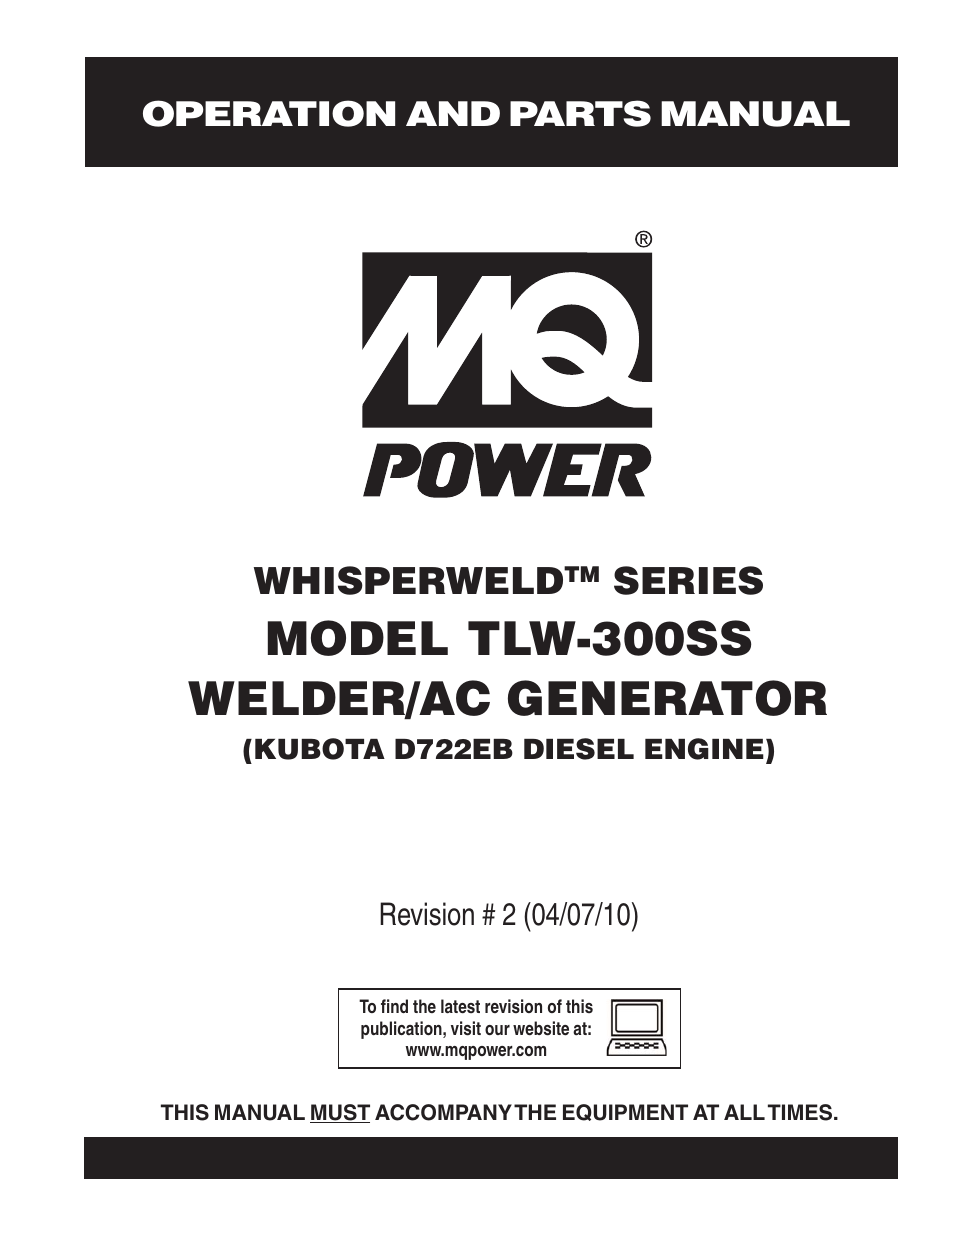 Multiquip MQ Power Whisperweld Welder/AC Generator TLW